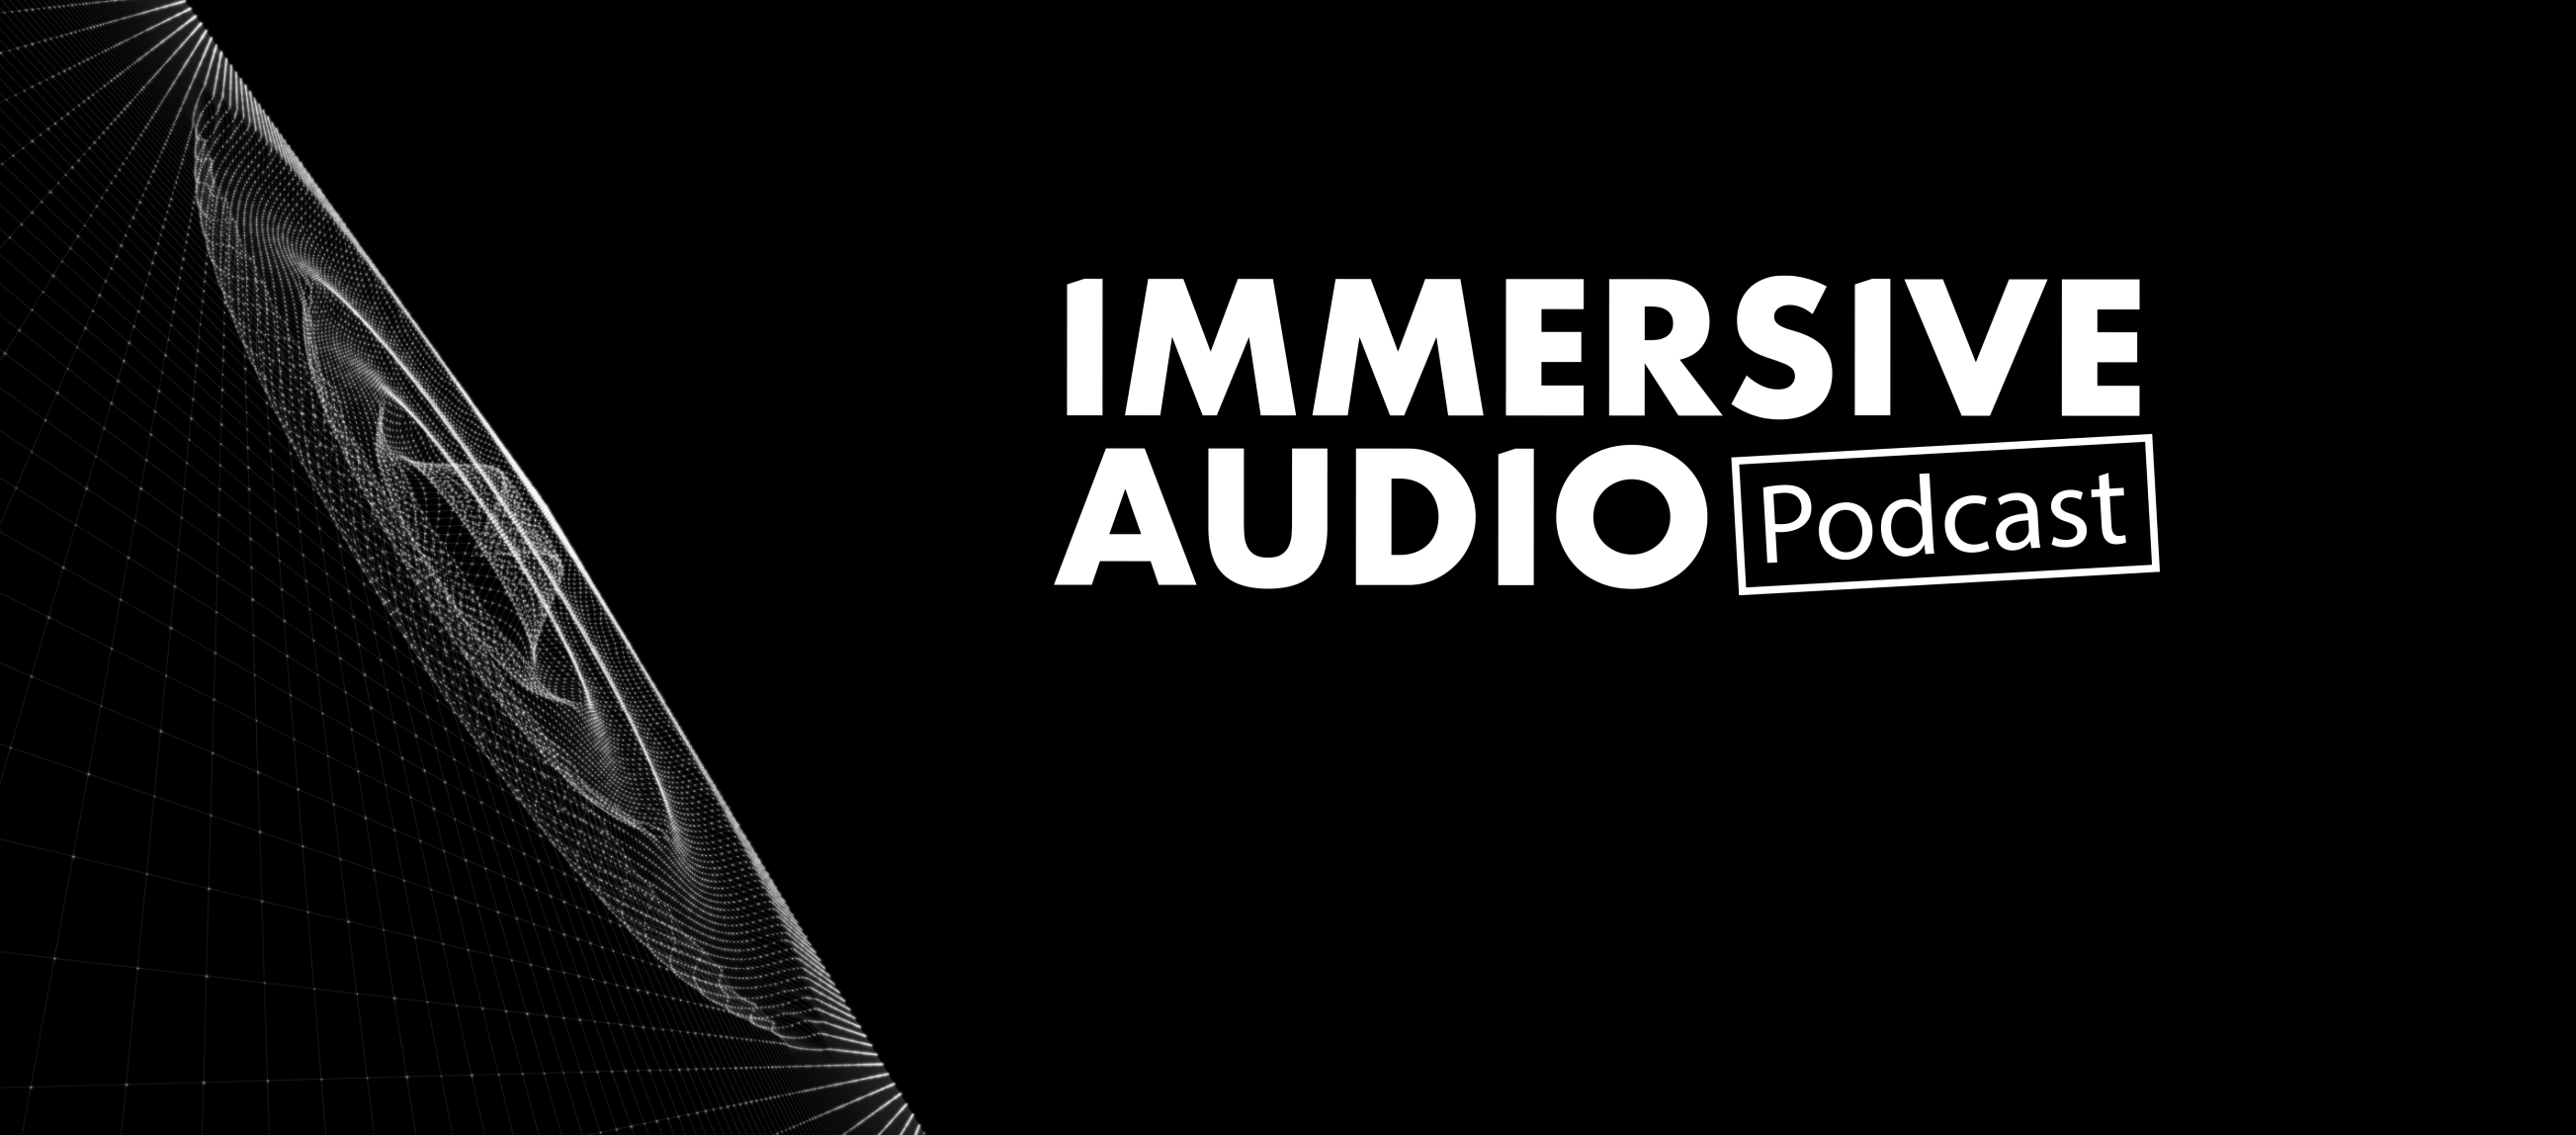 Immersive Audio Podcast – Episode 2 Justin Paterson